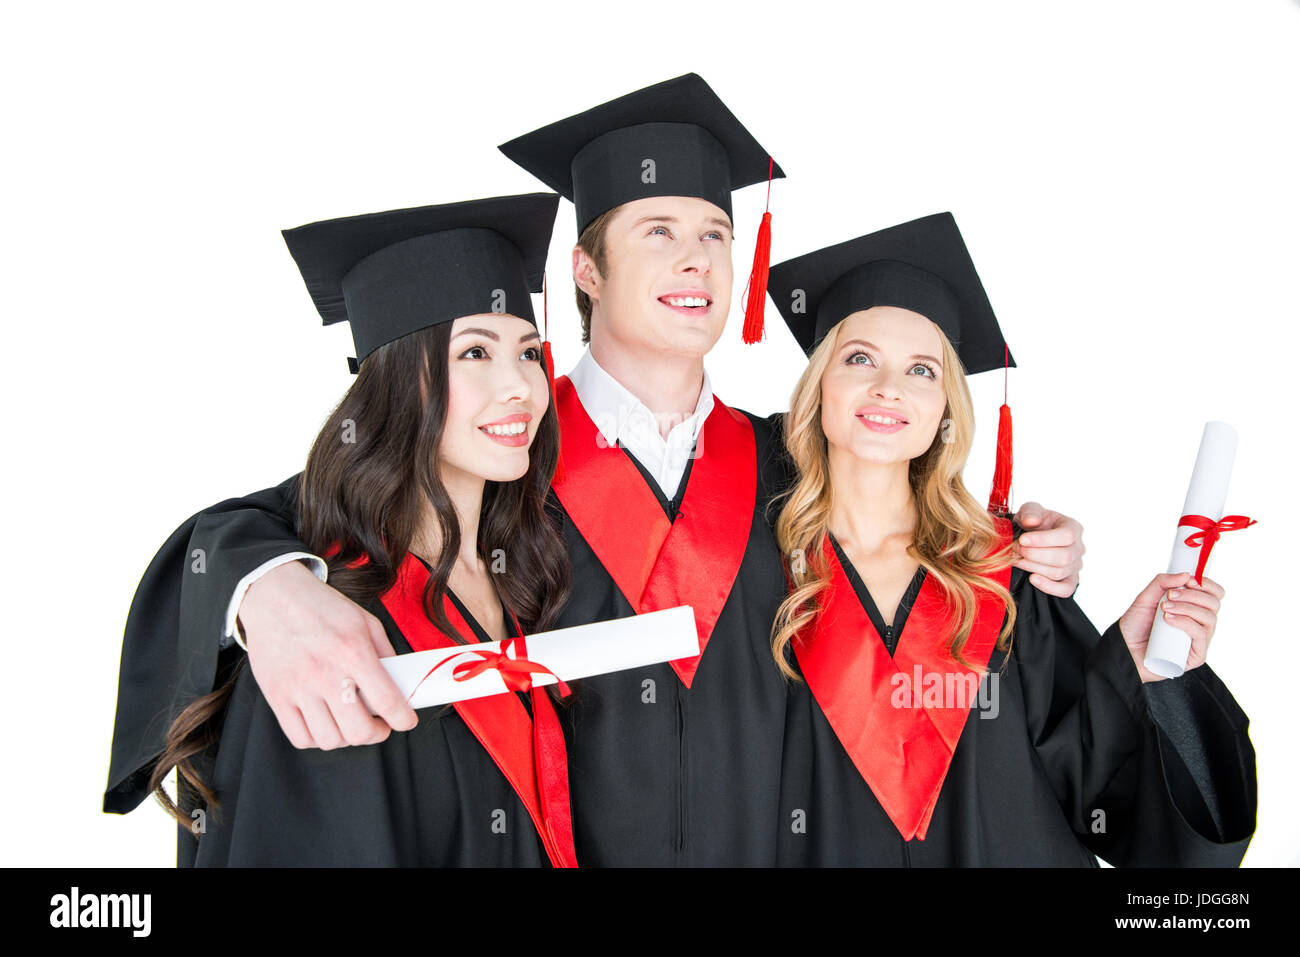 Happy students in academic caps standing embracing with diplomas - Stock Image